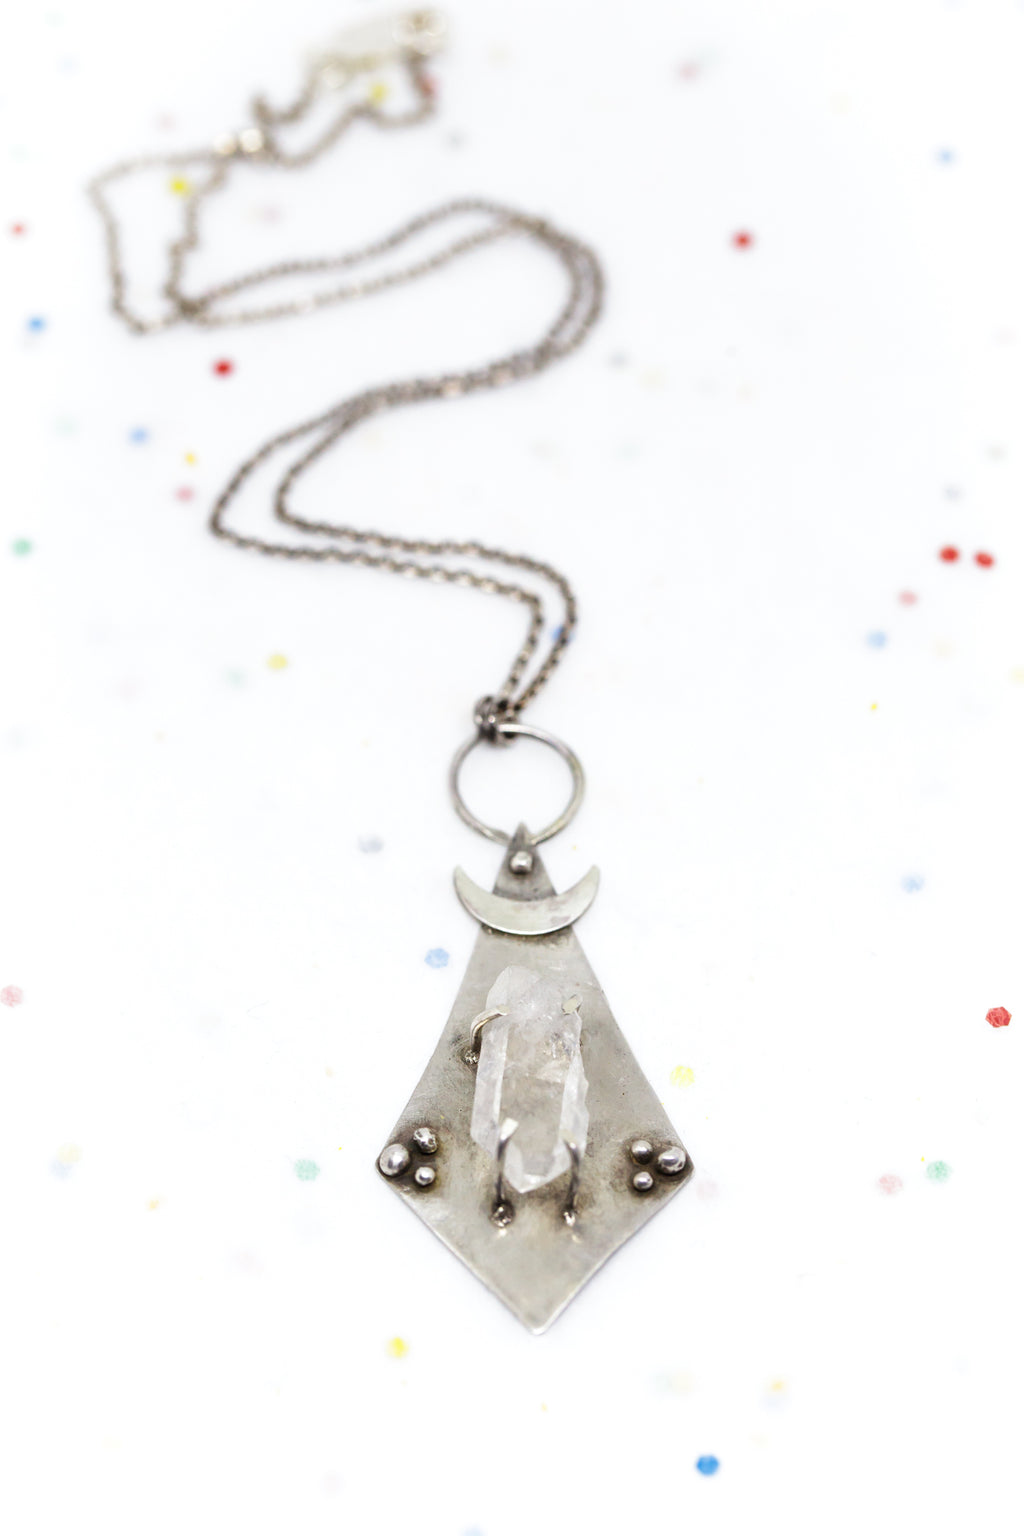 Handmade Moon-inspired Crystal Jewelry by Daisy Metal Works